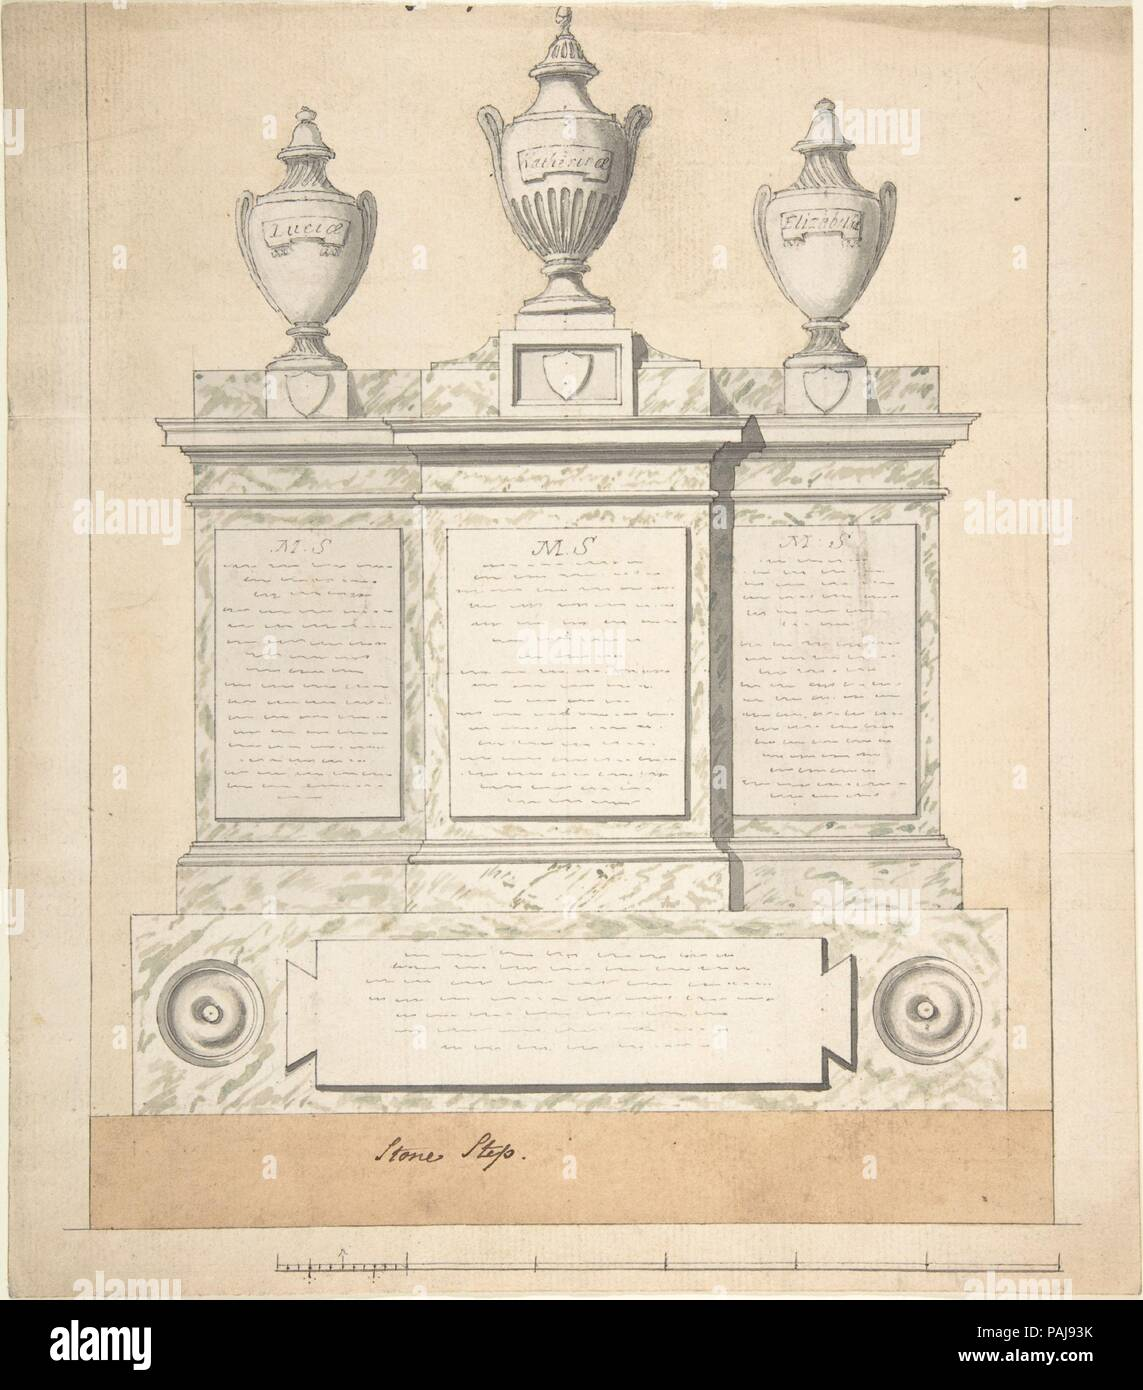 Design for a Monument to the Three Wives of the First Earl of Guilford, at Wroxton, Oxfordshire. Artist: Joseph Wilton (British, London 1722-1803 London). Dimensions: sheet: 10 x 9 in. (25.4 x 22.9 cm). Date: 1783. Museum: Metropolitan Museum of Art, New York, USA. - Stock Image